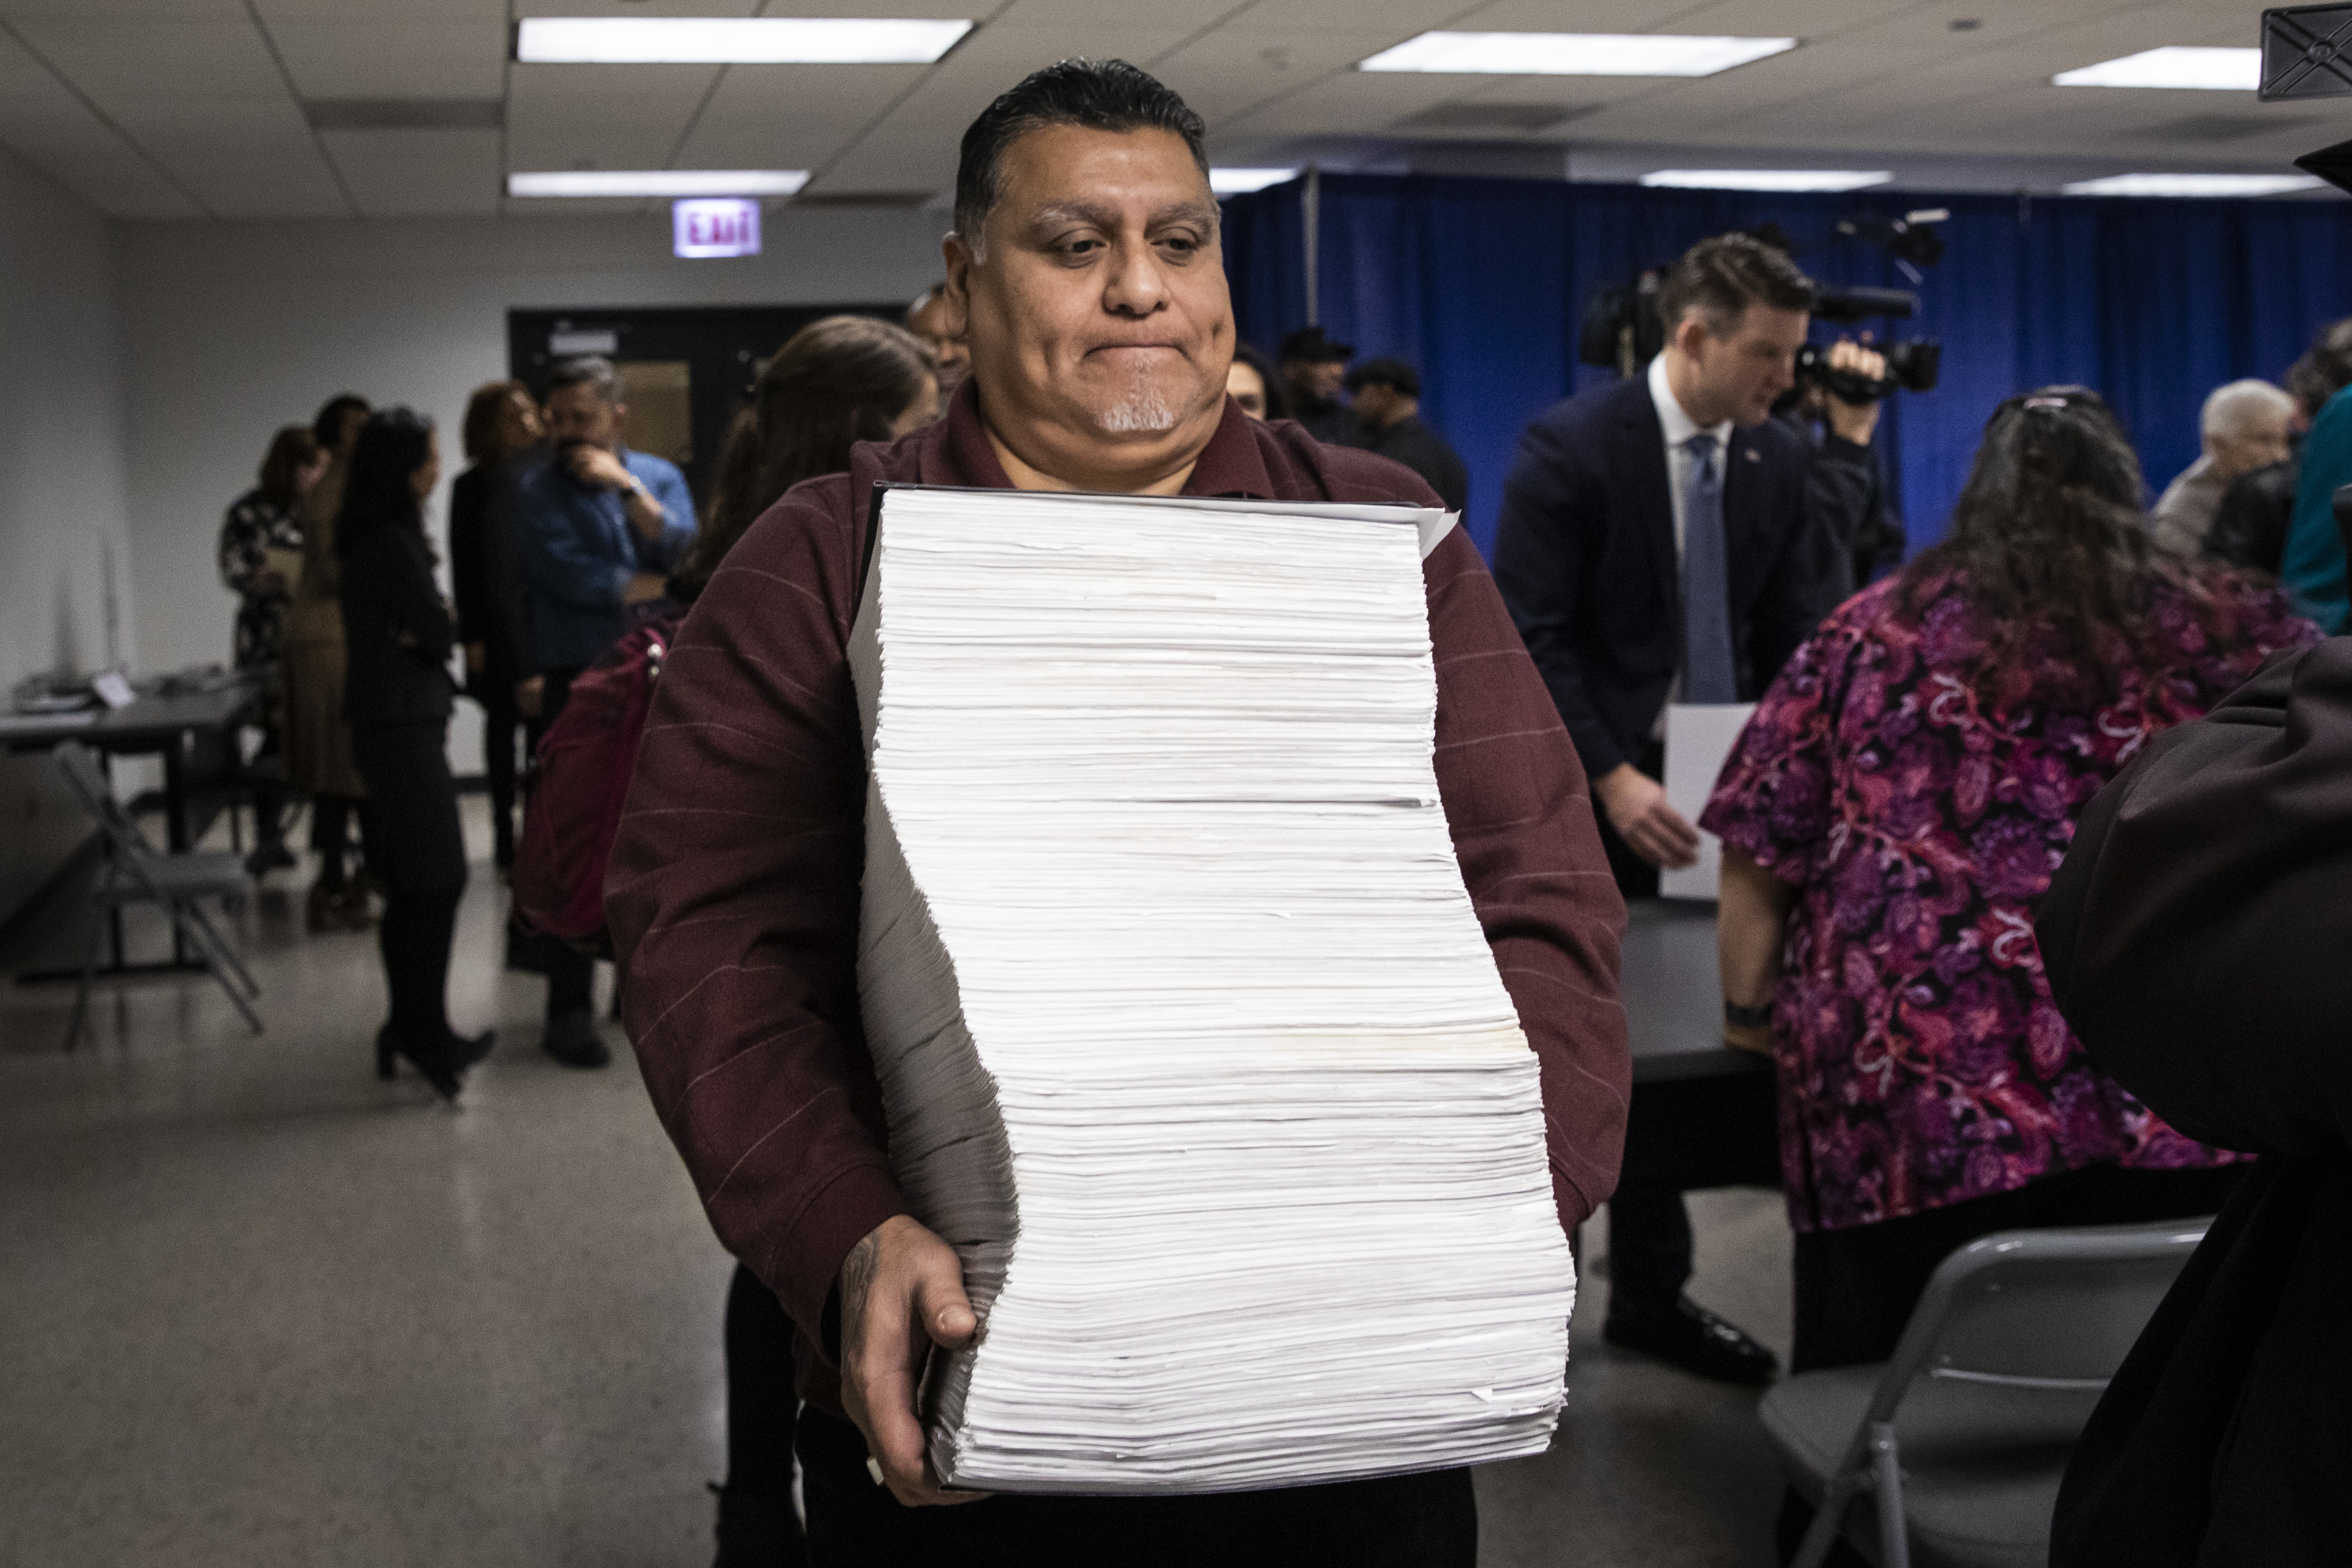 Rito Medellin, an employee in the Cook County Clerk's office, carries the nominating petitions for Bill Conway, a candidate for Cook County state's attorney.